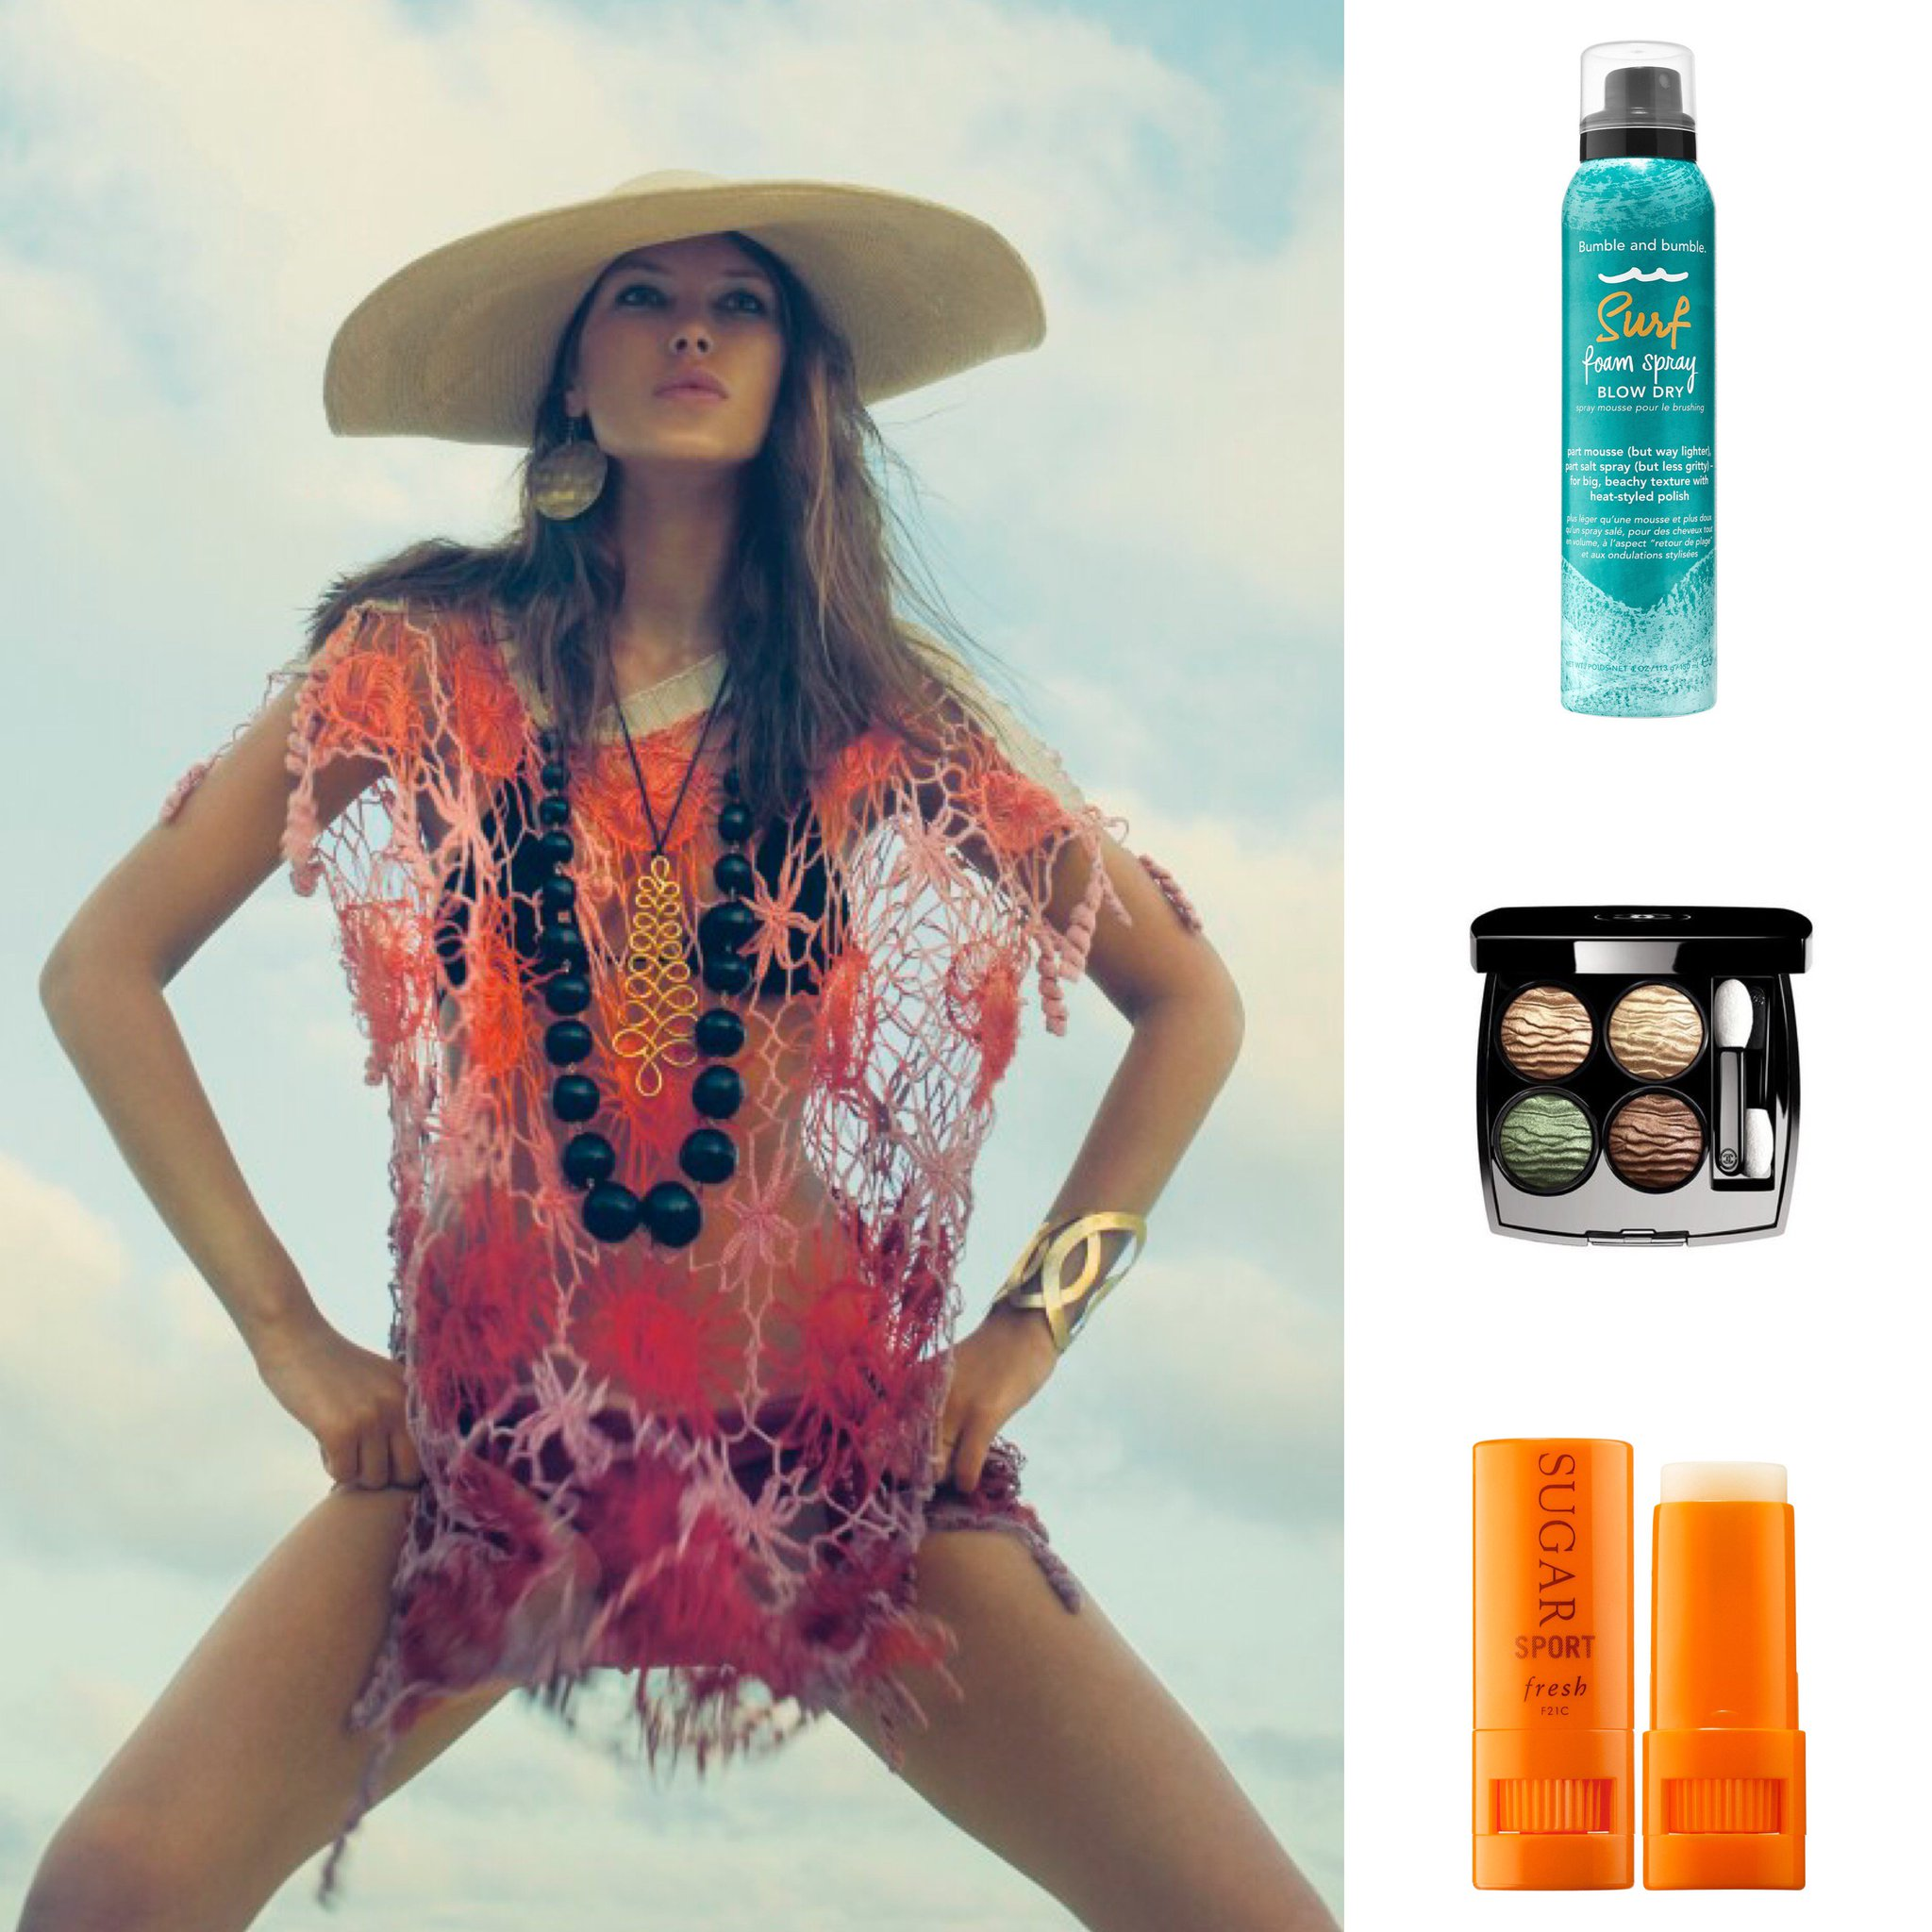 From sunscreen to shampoo, the best beauty to pack for your summer holiday: https://t.co/3PxBtLIzwC https://t.co/M3TQl7iWWD